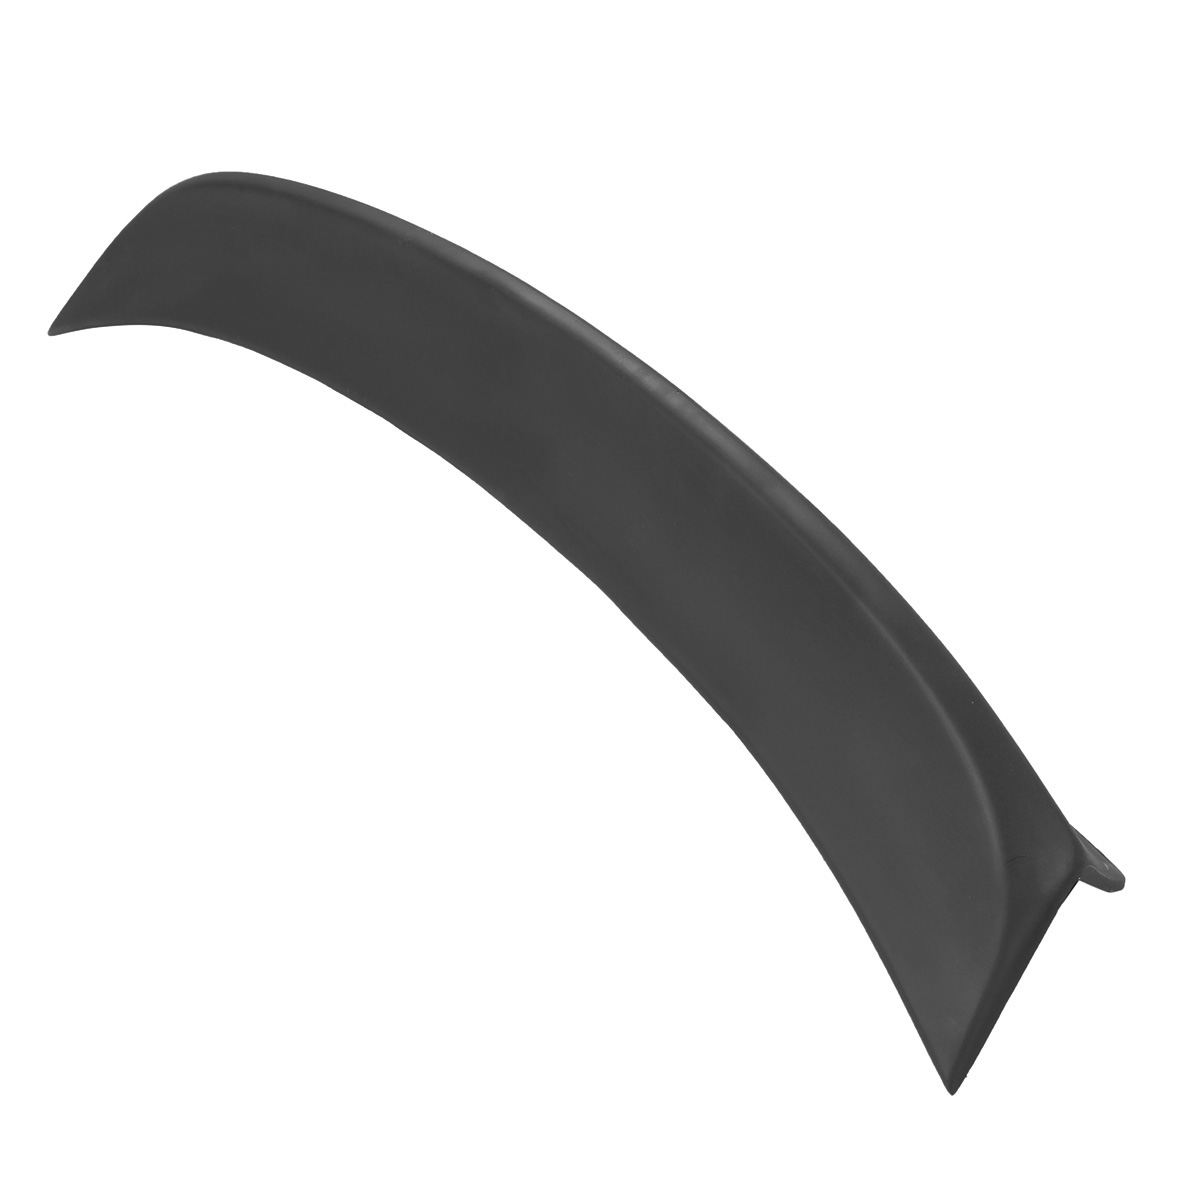 Car Spoiler Wing For 2001-2006 BMW E46 2DR COUPE M3 CSL